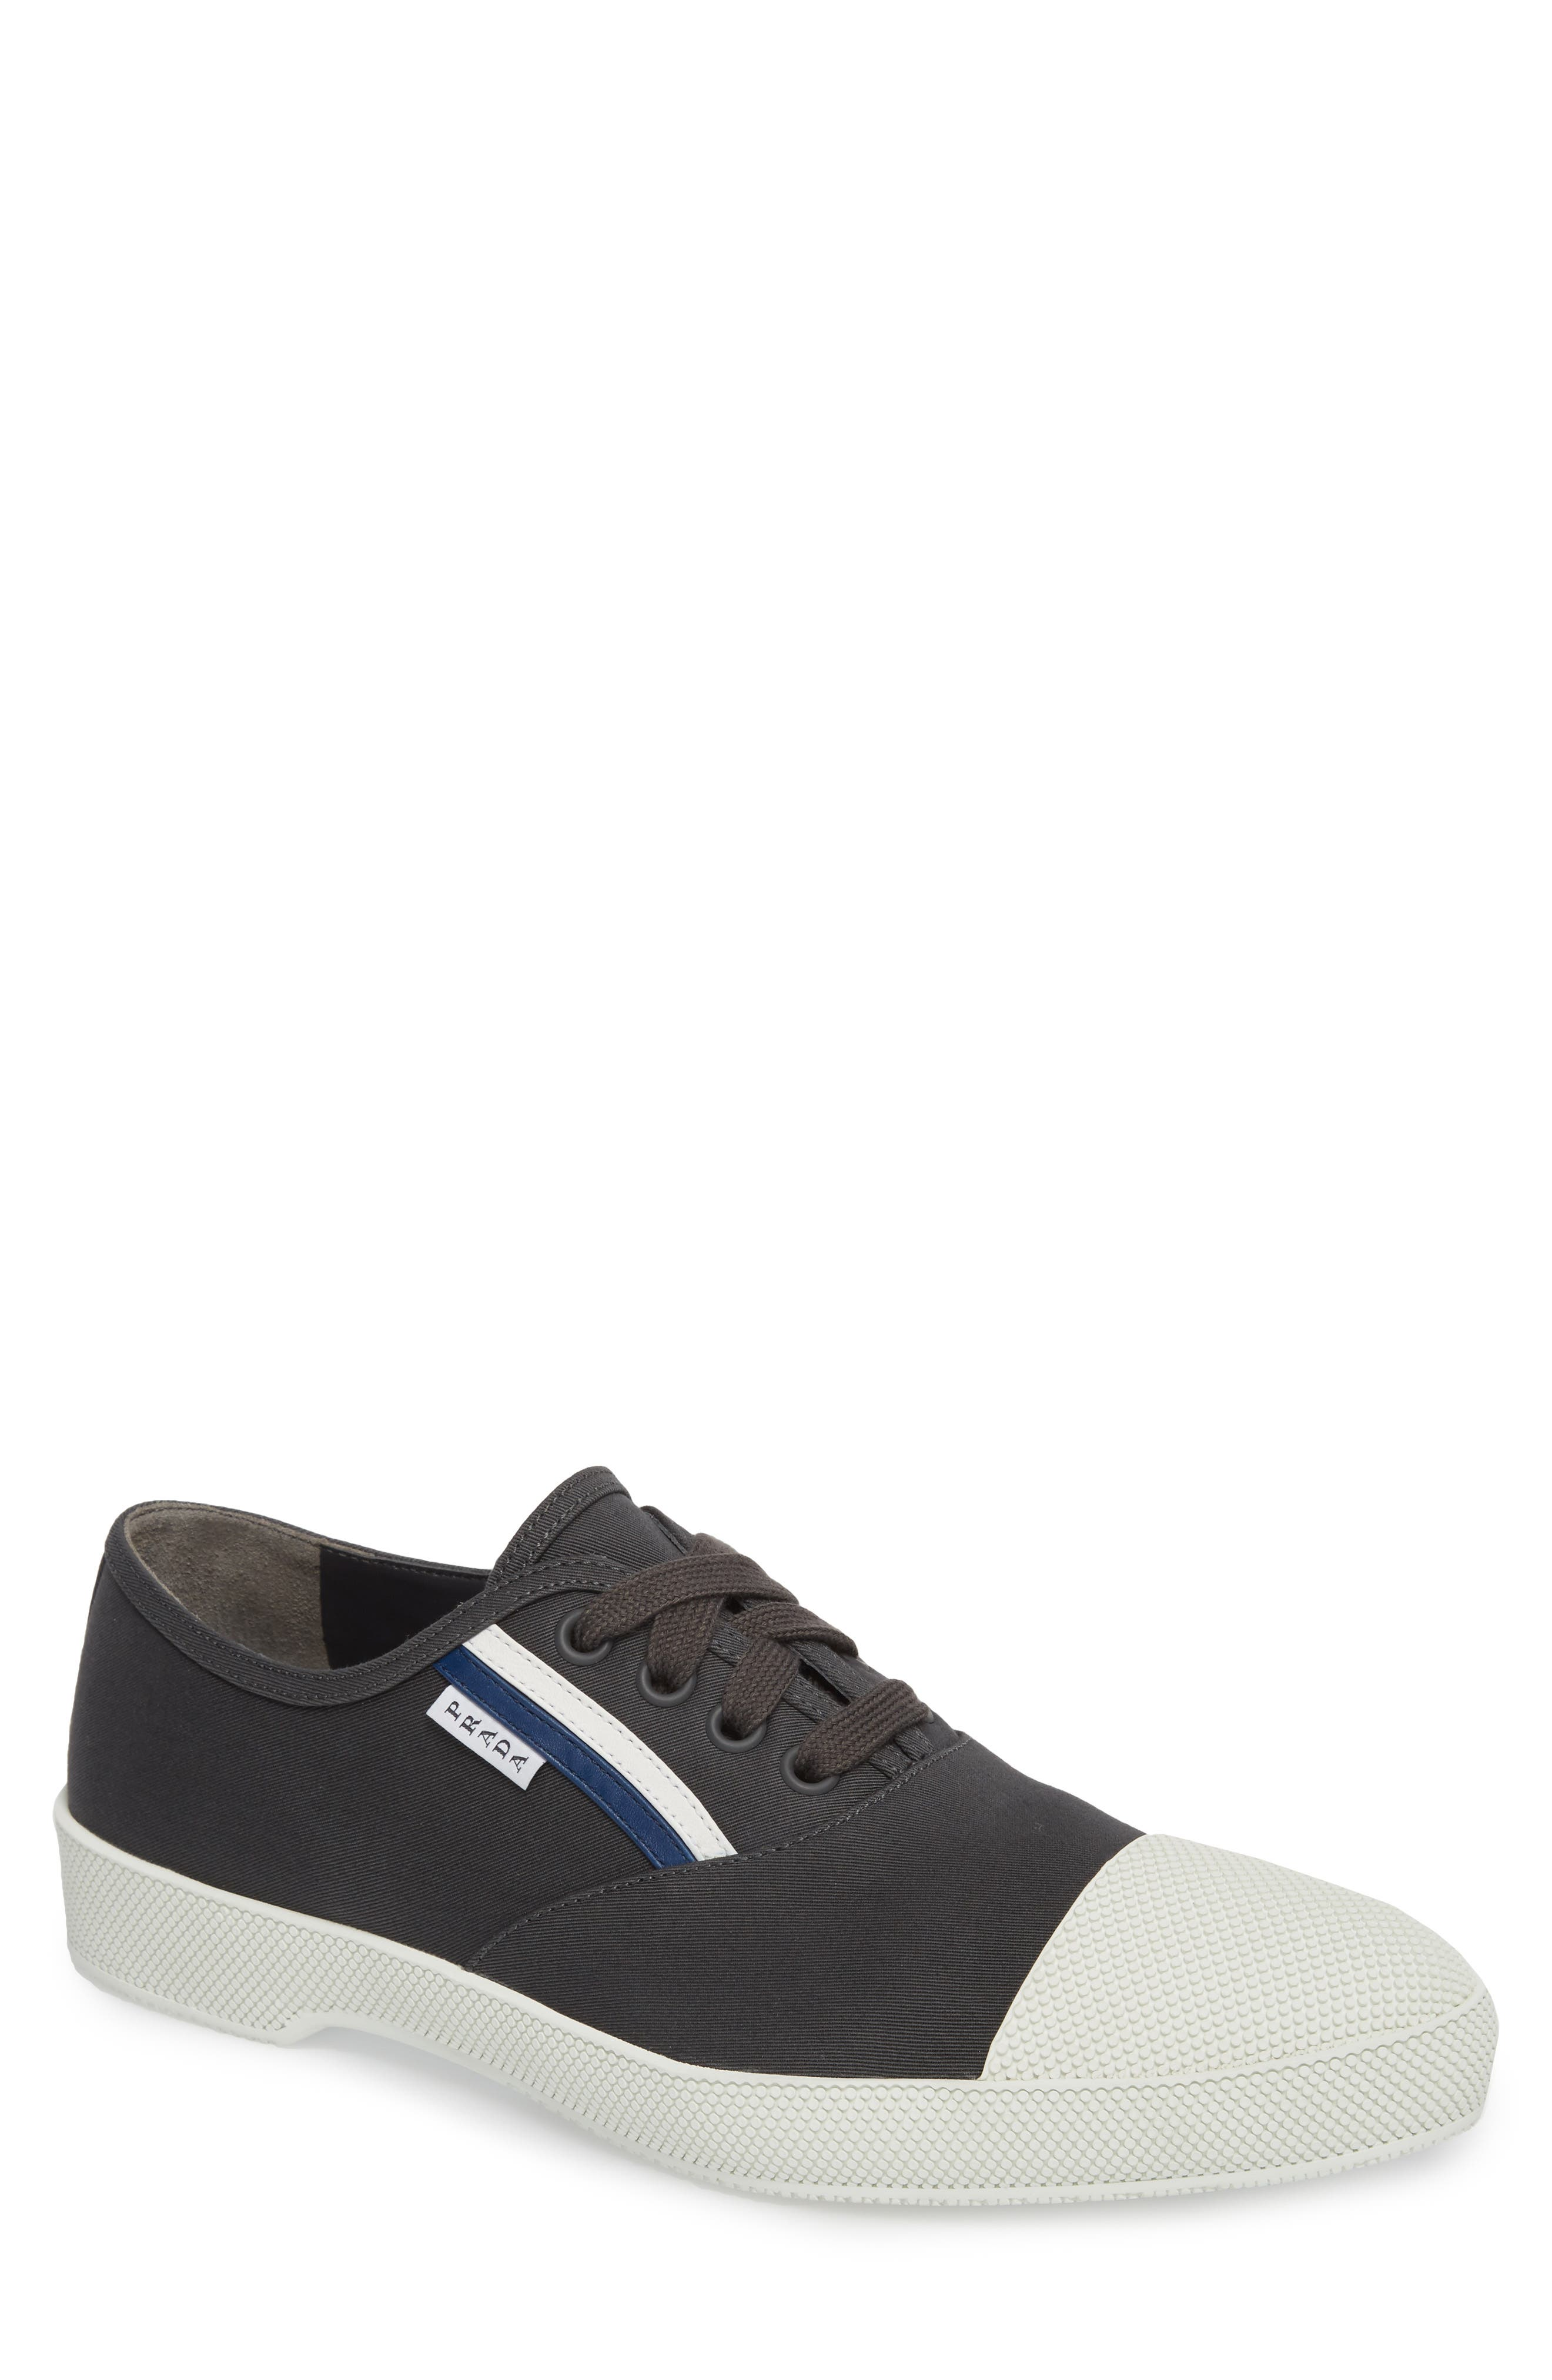 Prada Cap Toe Oxford (Men)